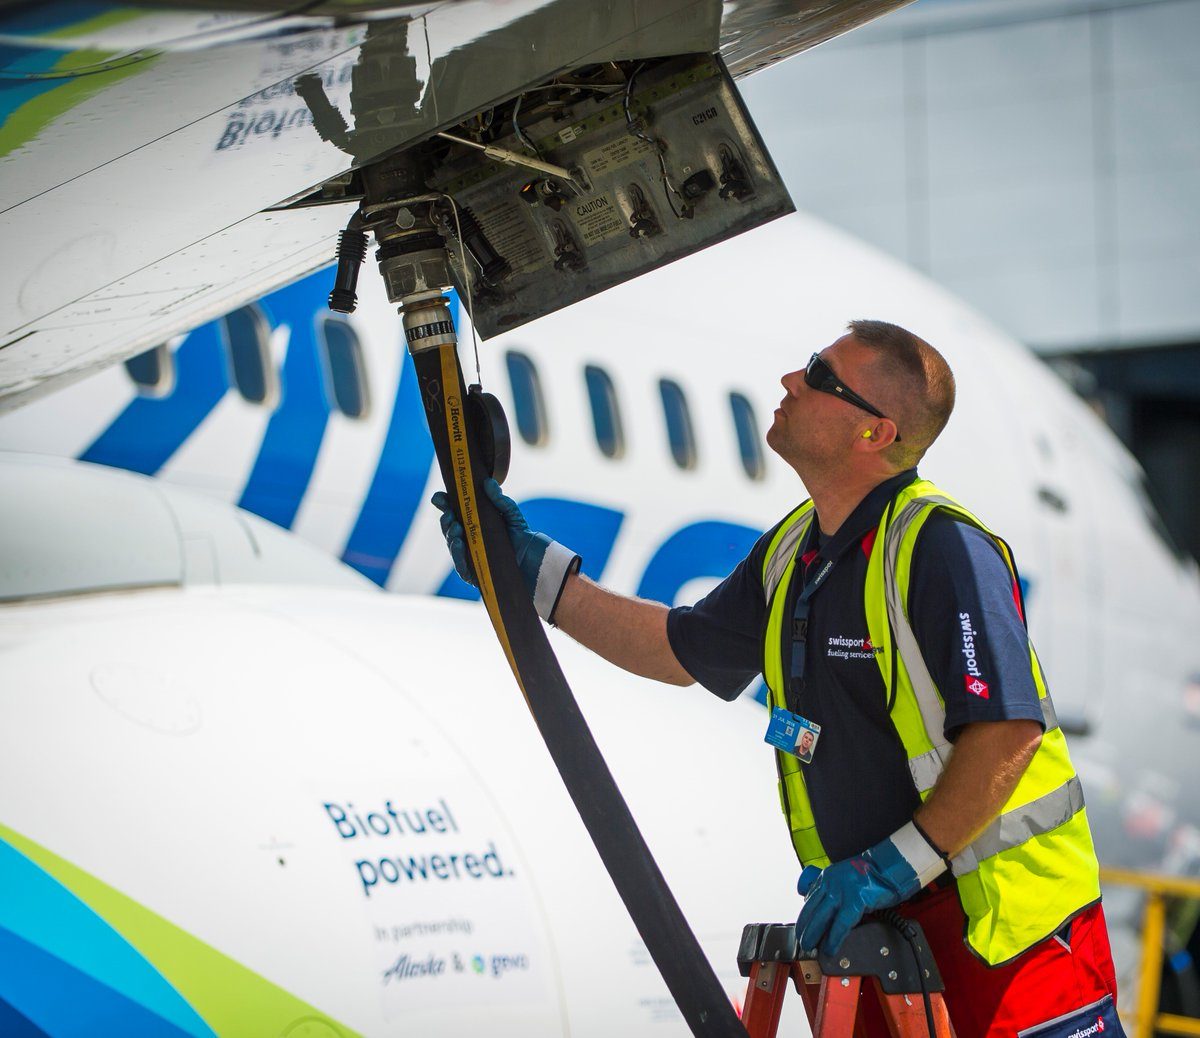 All bio-fueled up & ready to go! Today we operated the first commercial flight using biofuel